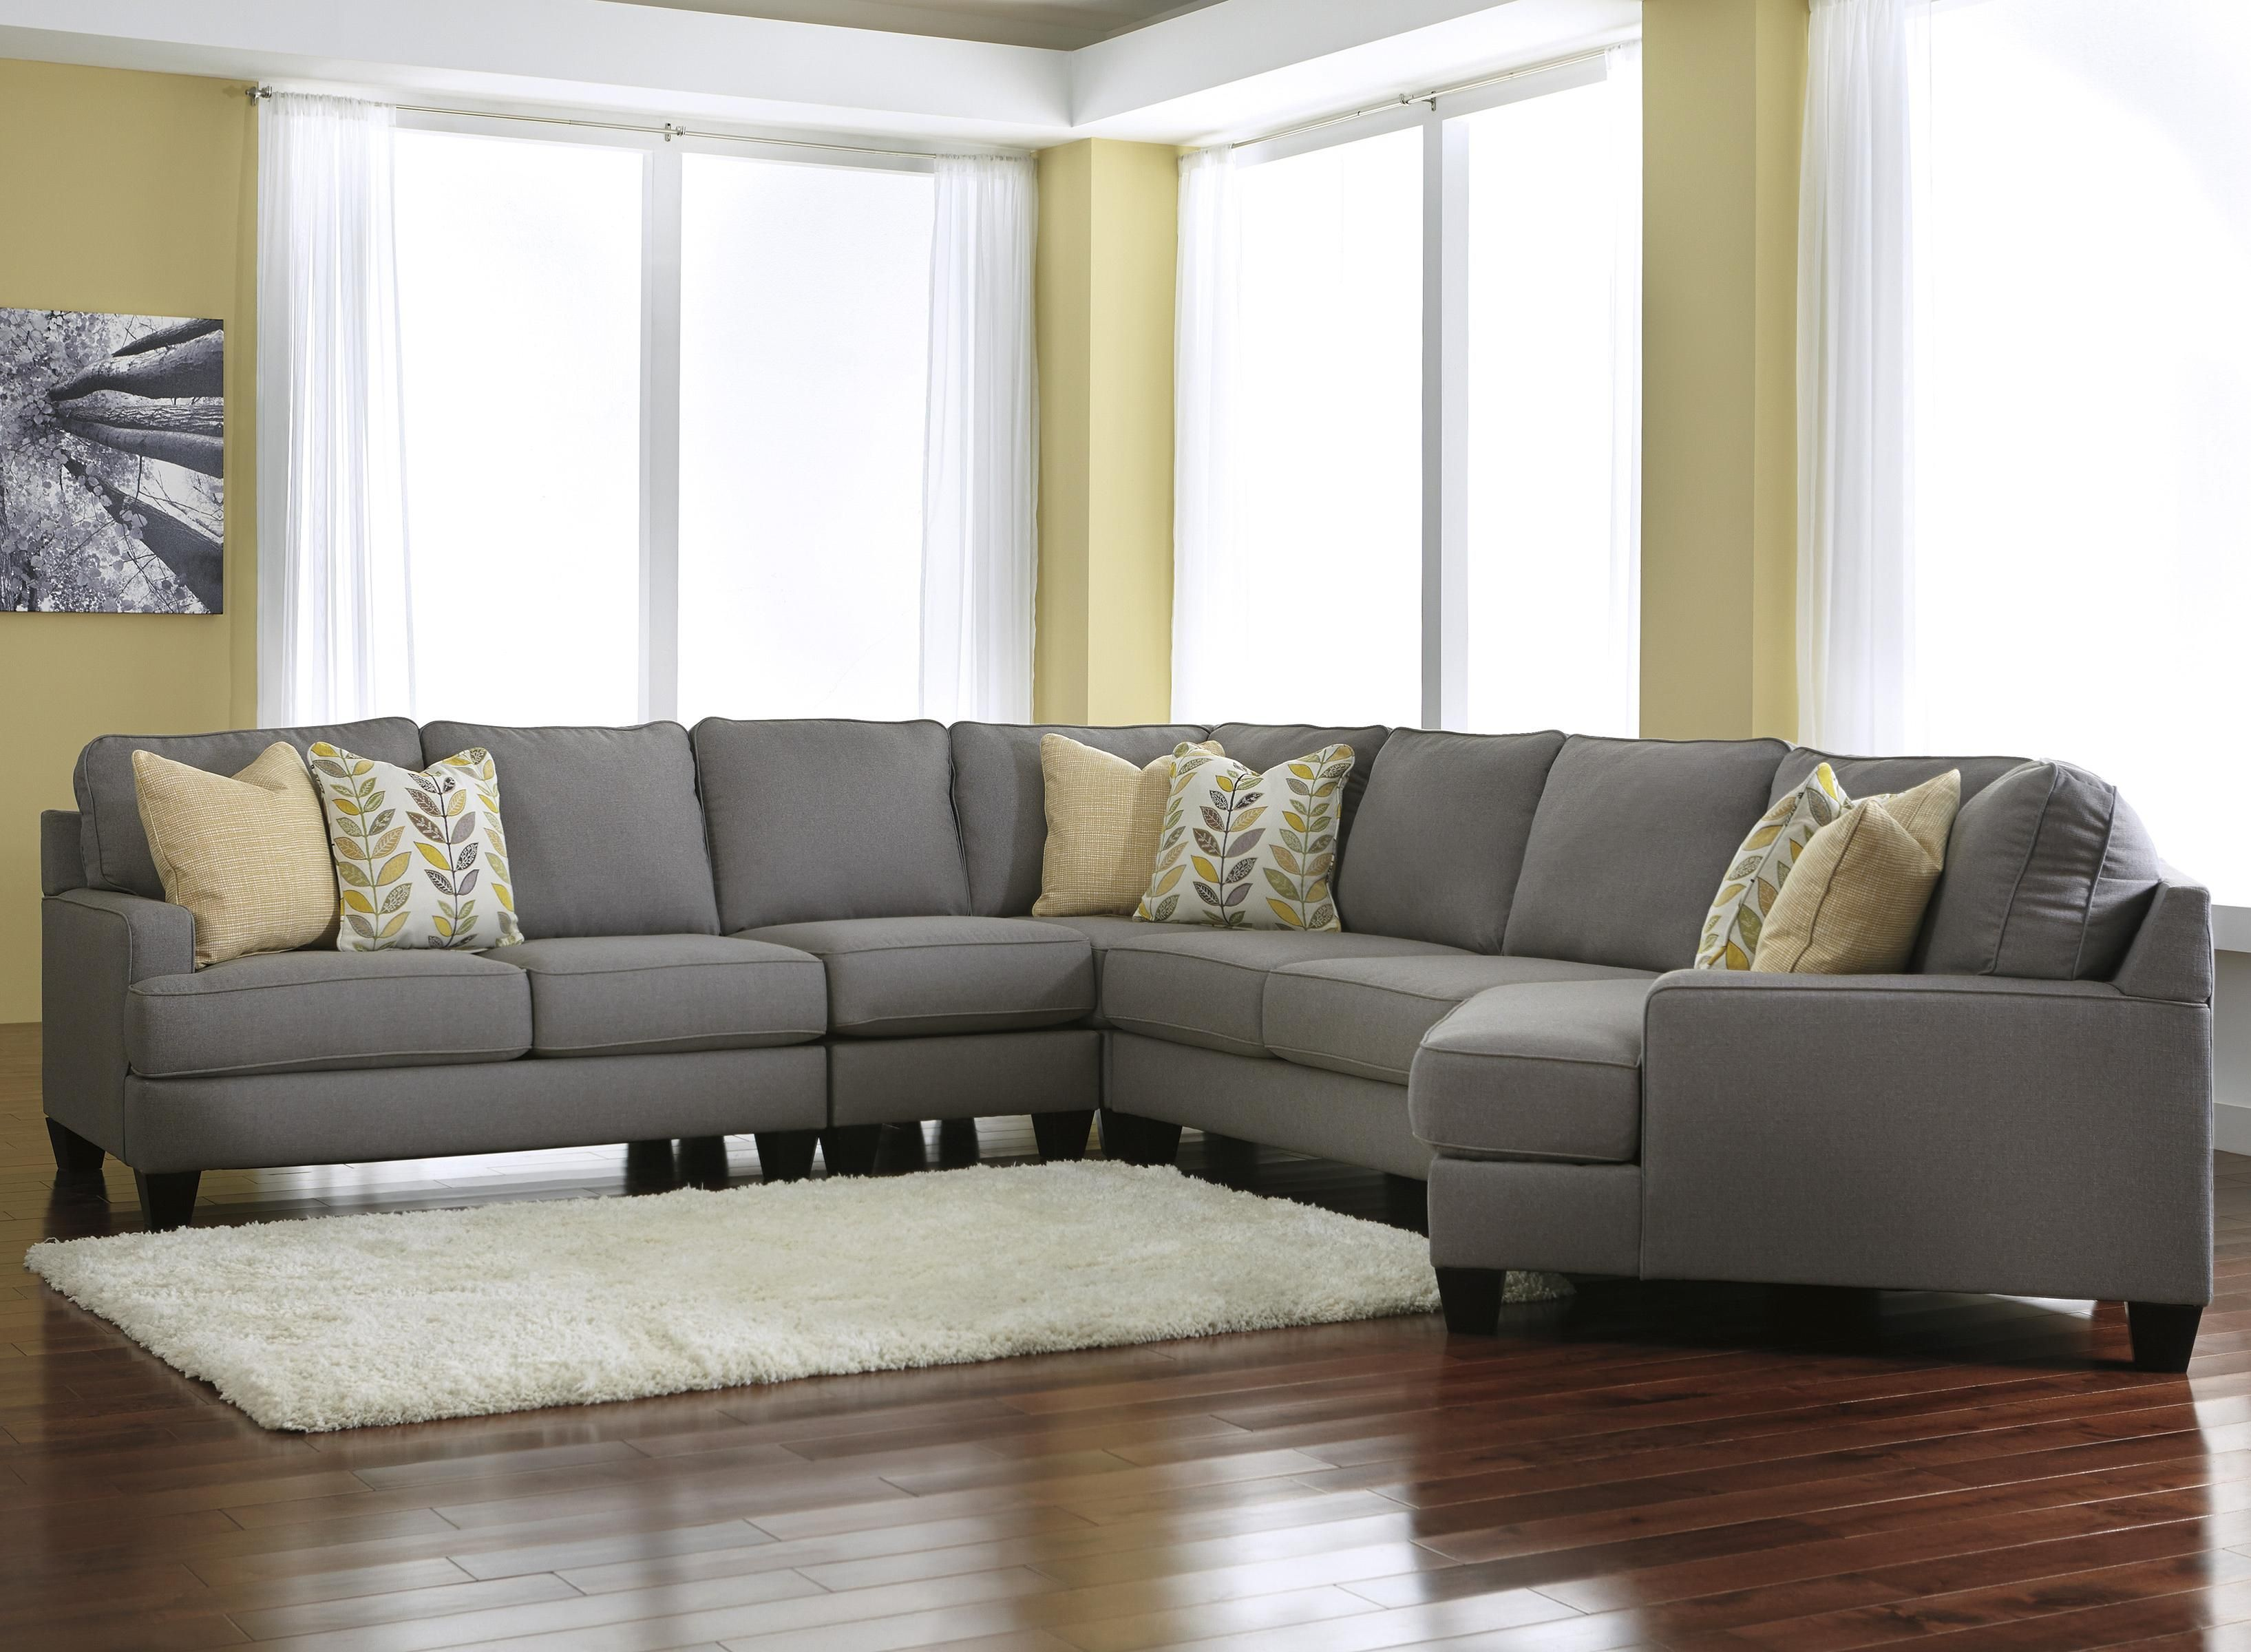 Living Room Designs With Sectionals Cool Chamberly  Alloy Modern 5Piece Sectional Sofa With Right Cuddler Design Ideas